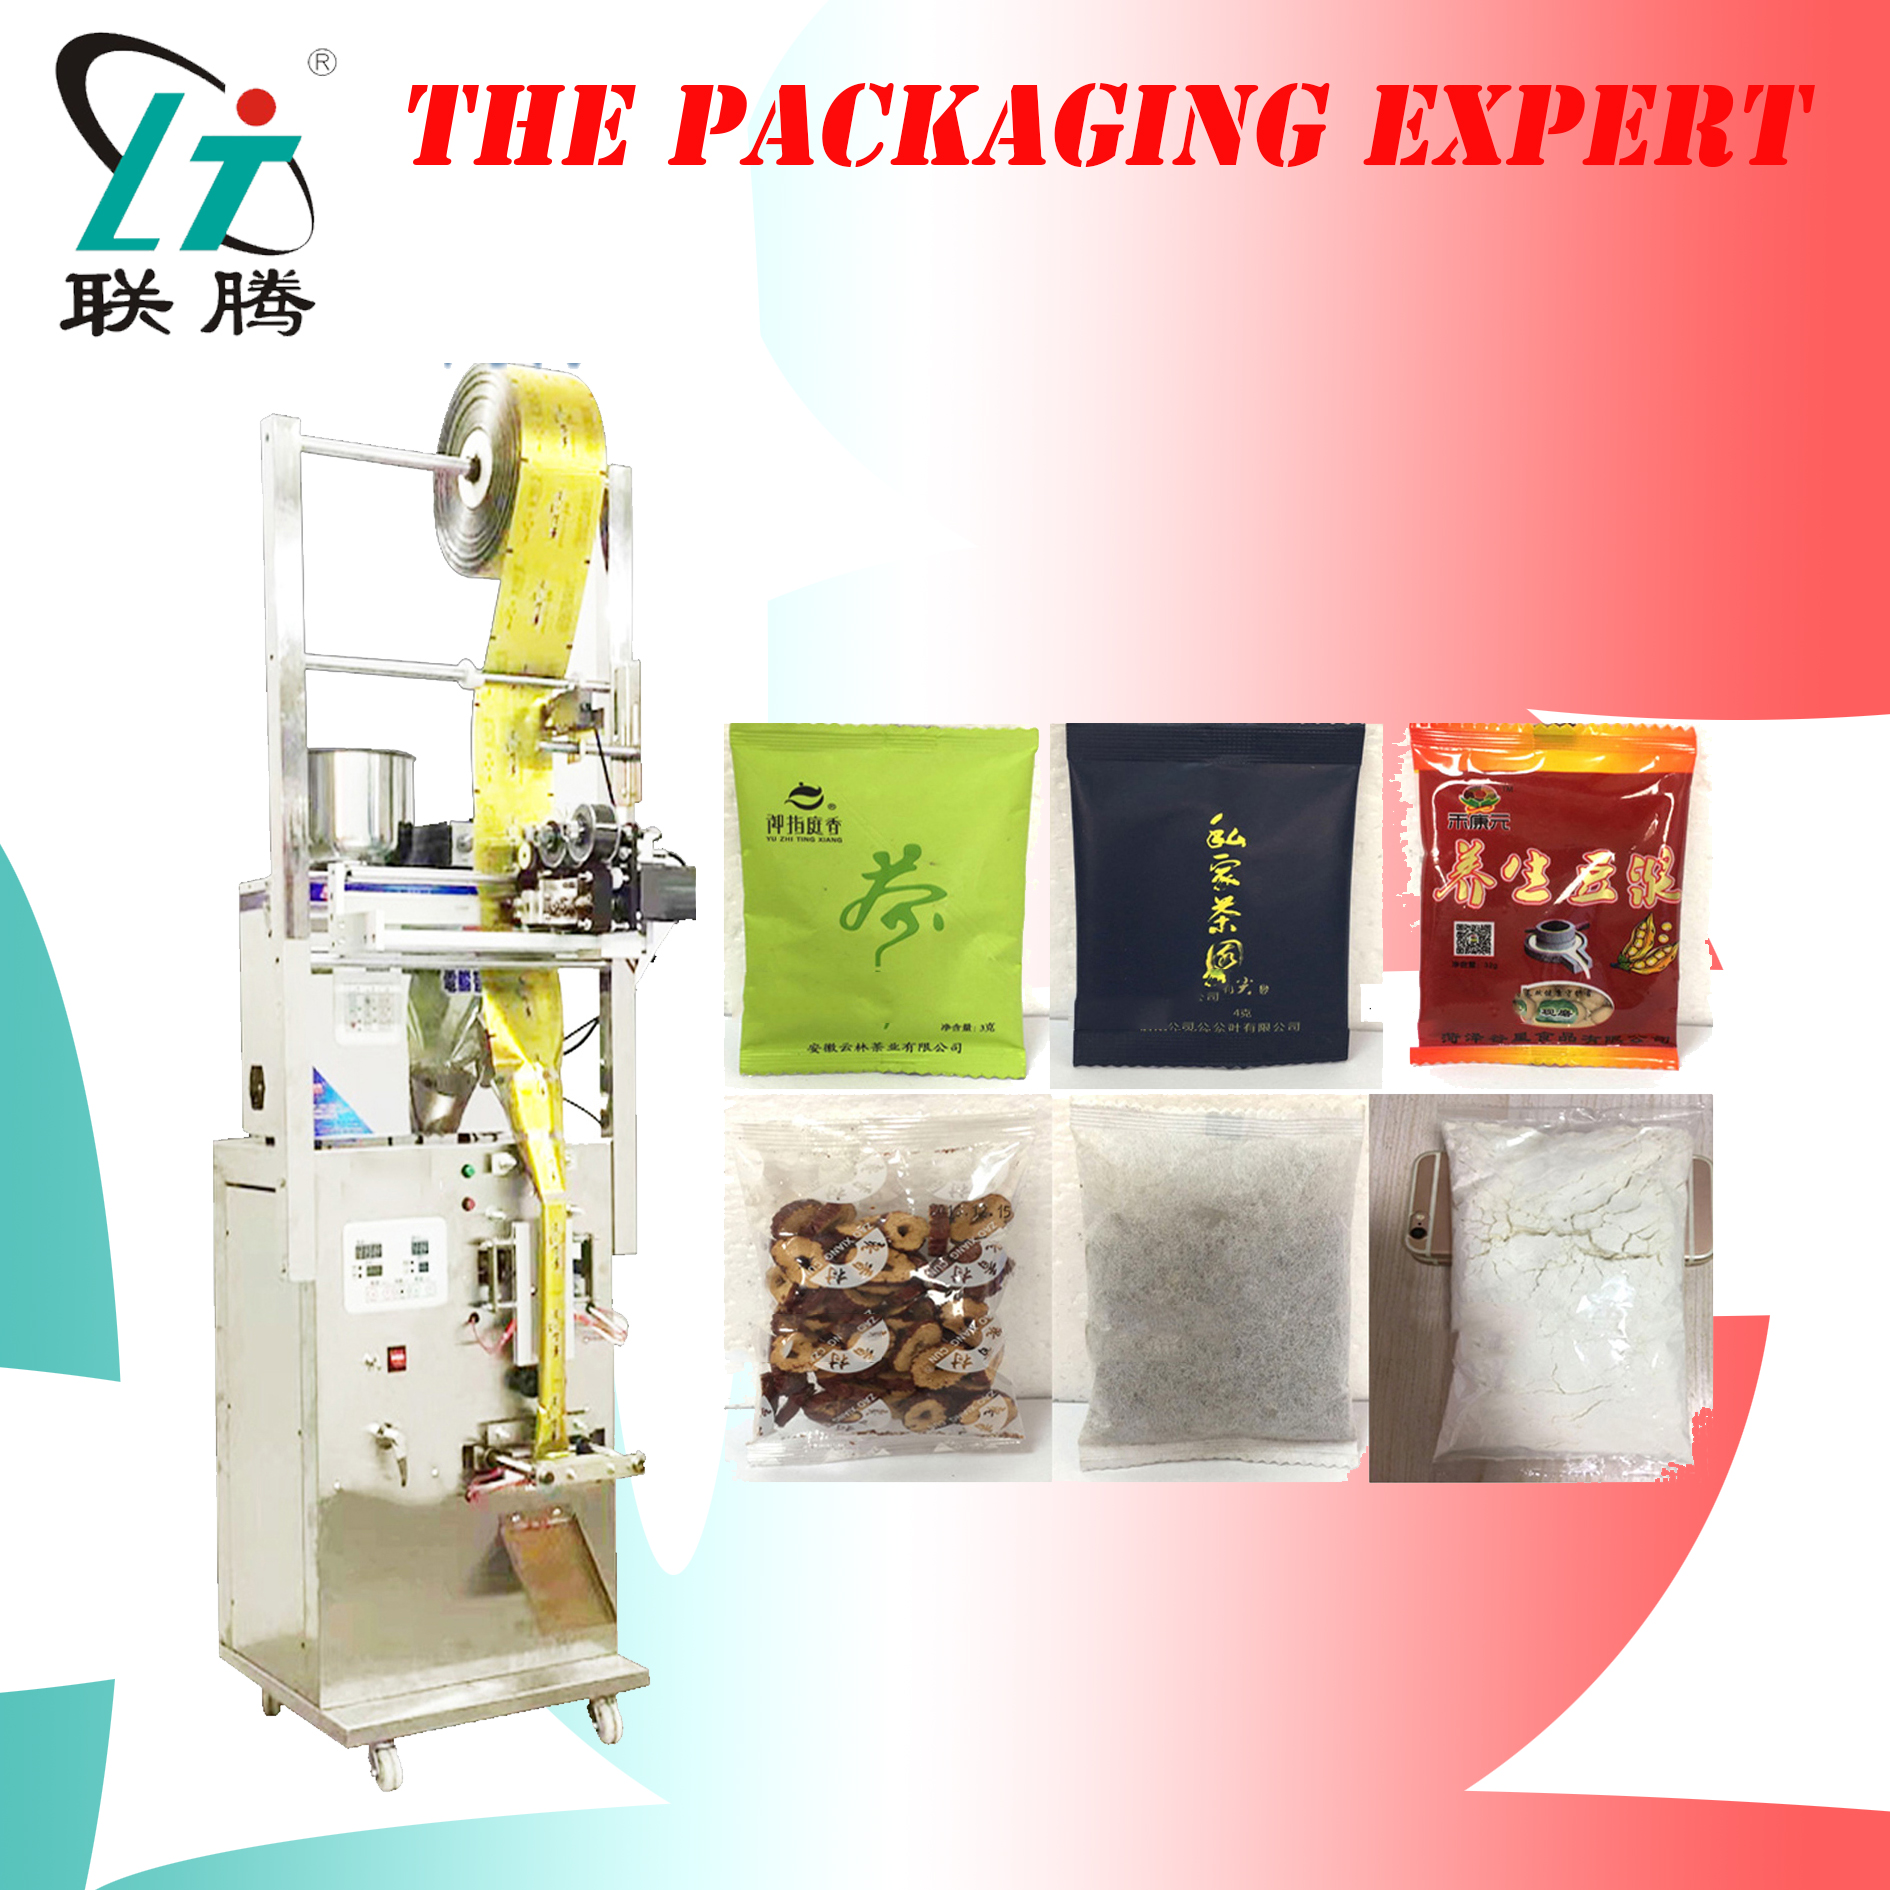 Bags Back Sealing Packing Machine Herb Filling And Weighing Food Tea Leaf Powder Grain Medicine Snacks Pouch Pack Seal Device